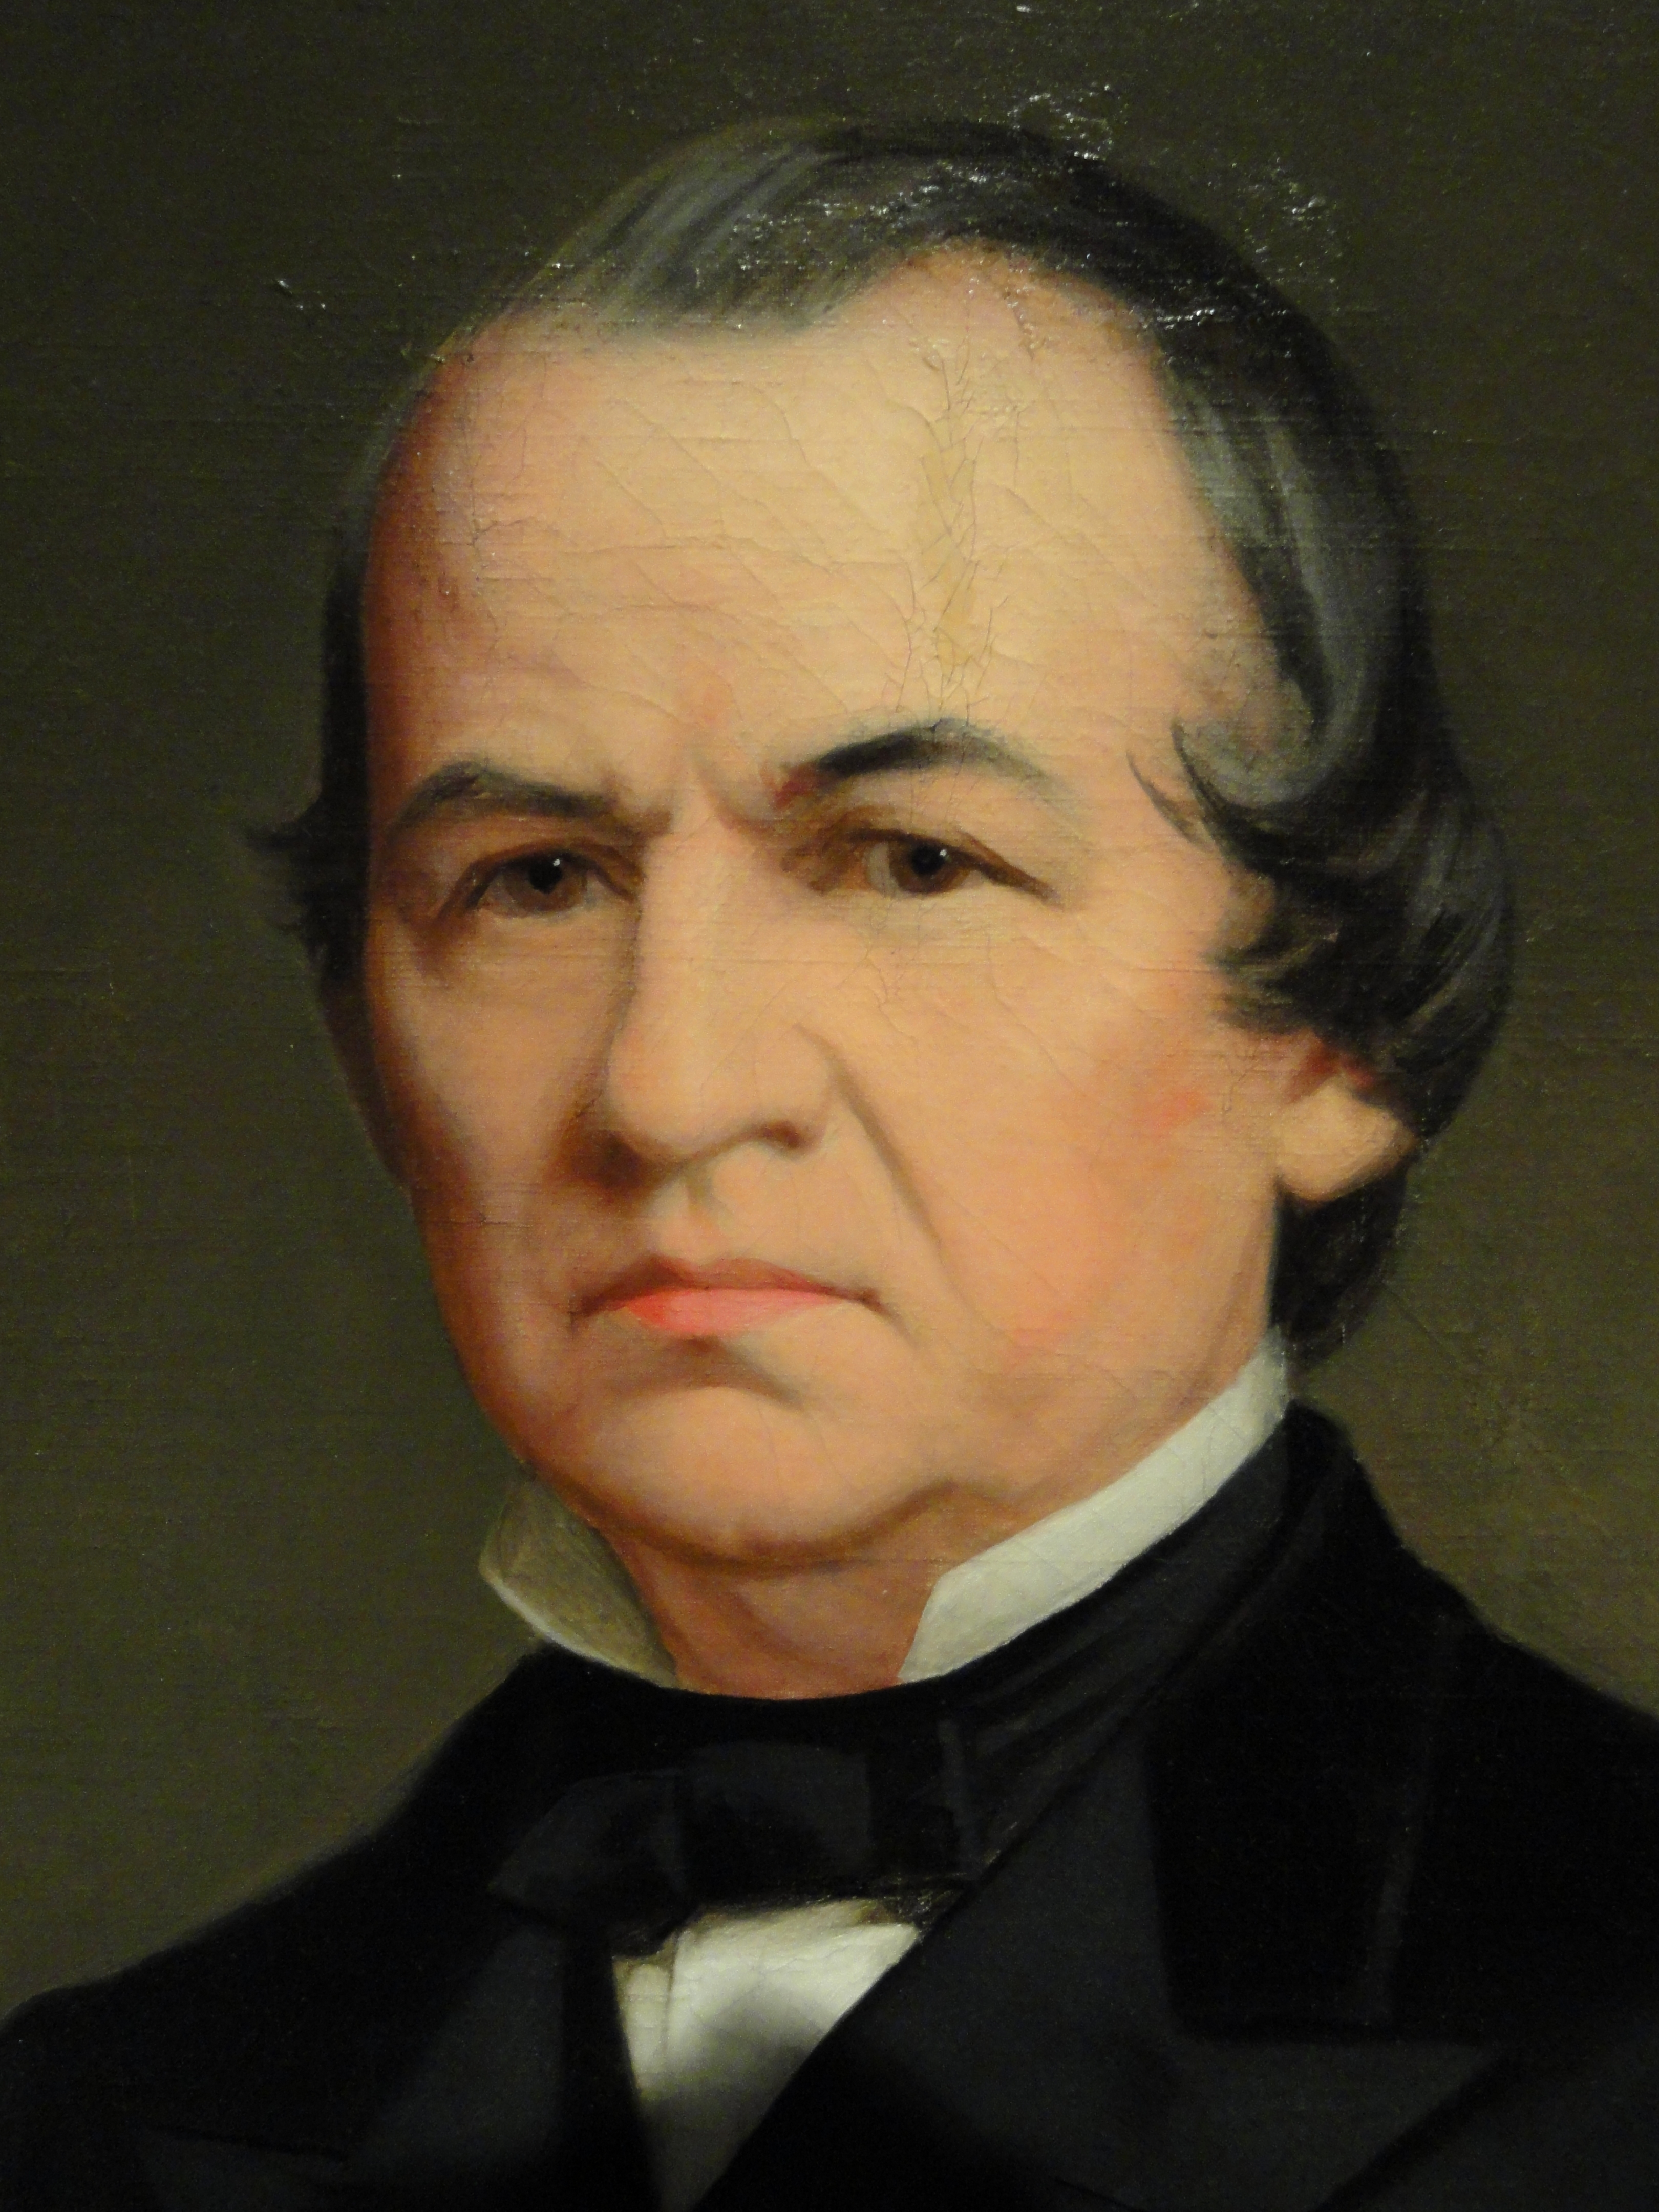 andrew johnson The impeachment of president andrew johnson was the result of political conflict and the rupture of ideologies in the aftermath of the american civil war it arose from uncompromised beliefs and a contest for power in a nation struggling with reunification sir, the bloody and untilled fields of the ten unreconstructed states,.